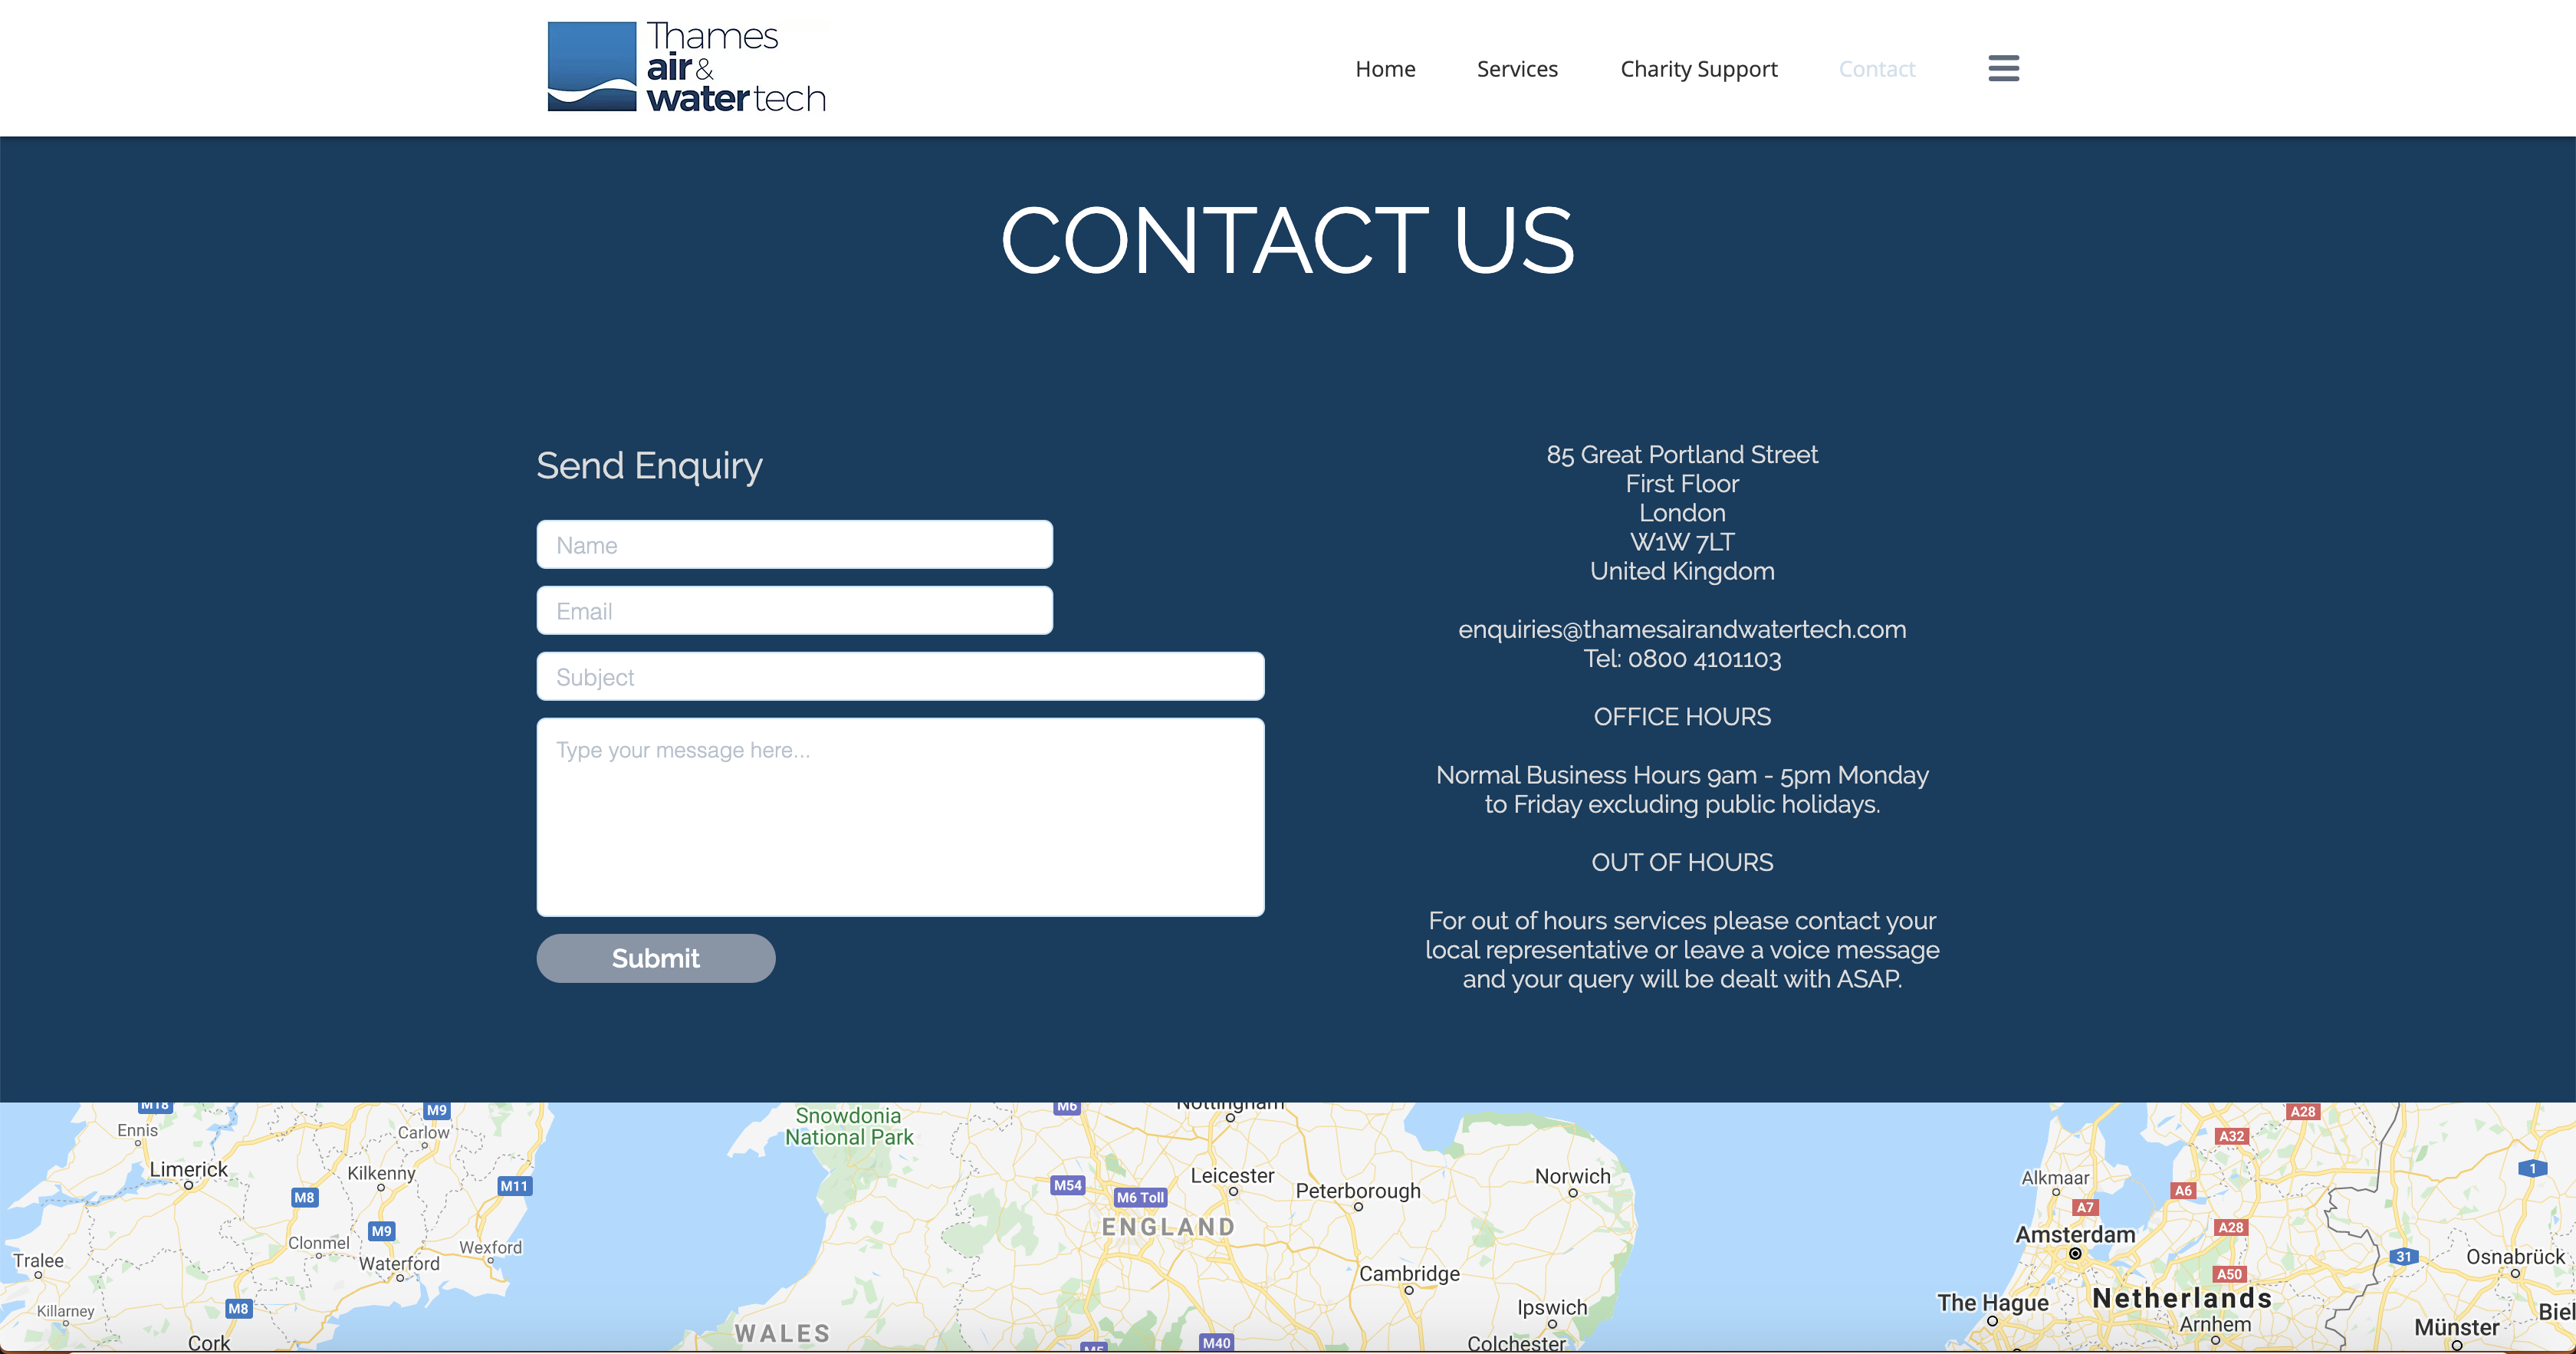 Thames Air and Water Tech | Contact Us